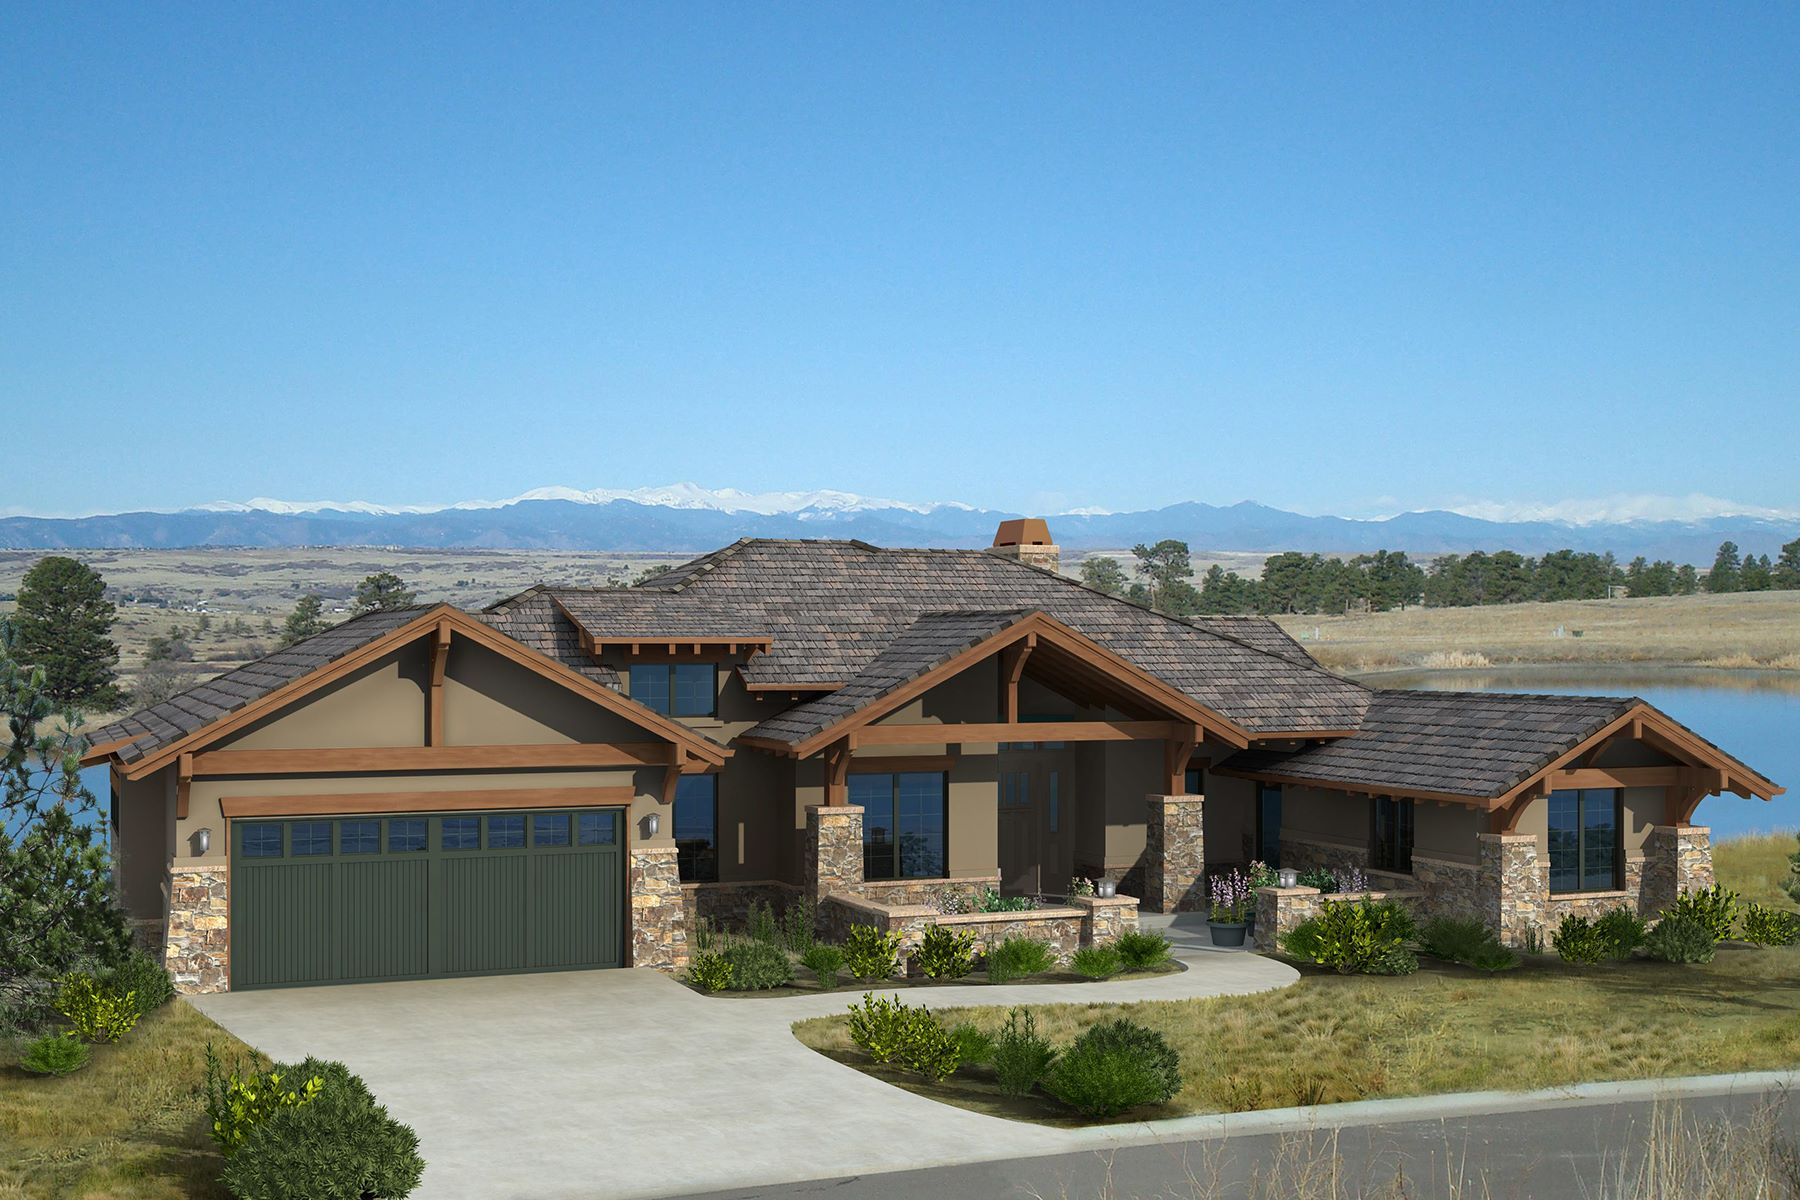 Single Family Home for Active at Top of the world views from this beautiful home 8776 Eagle Moon Way Parker, Colorado 80134 United States